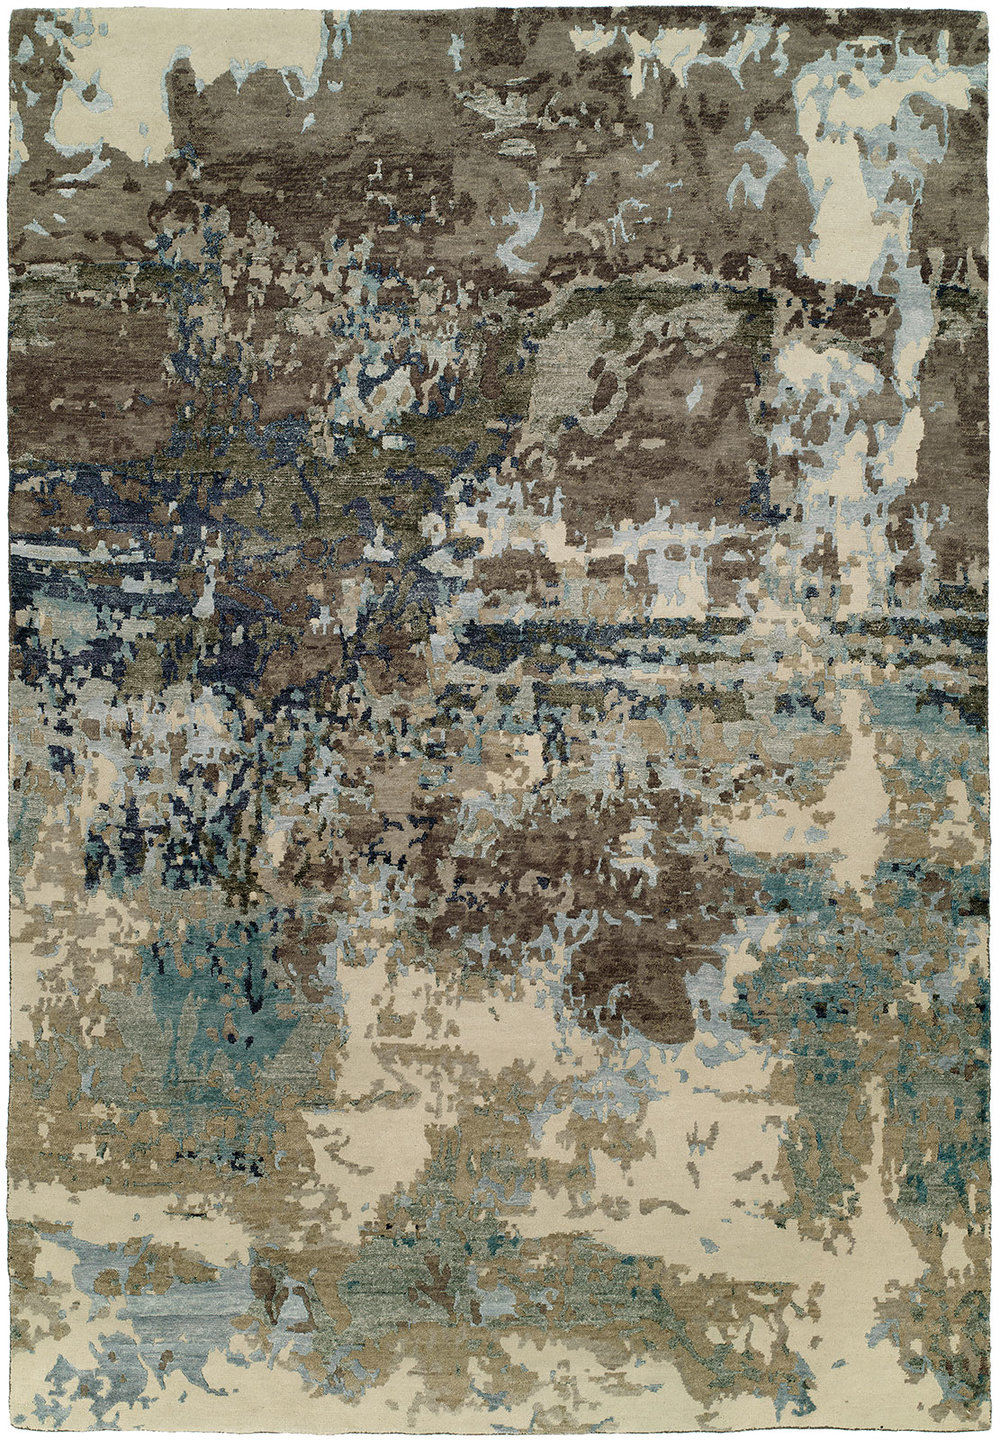 Rug #003720 Retail: $8806.00 Sale: $6164.20 Size: 9'x12' Color: Blue/Grey Wool & Silkette Made in India